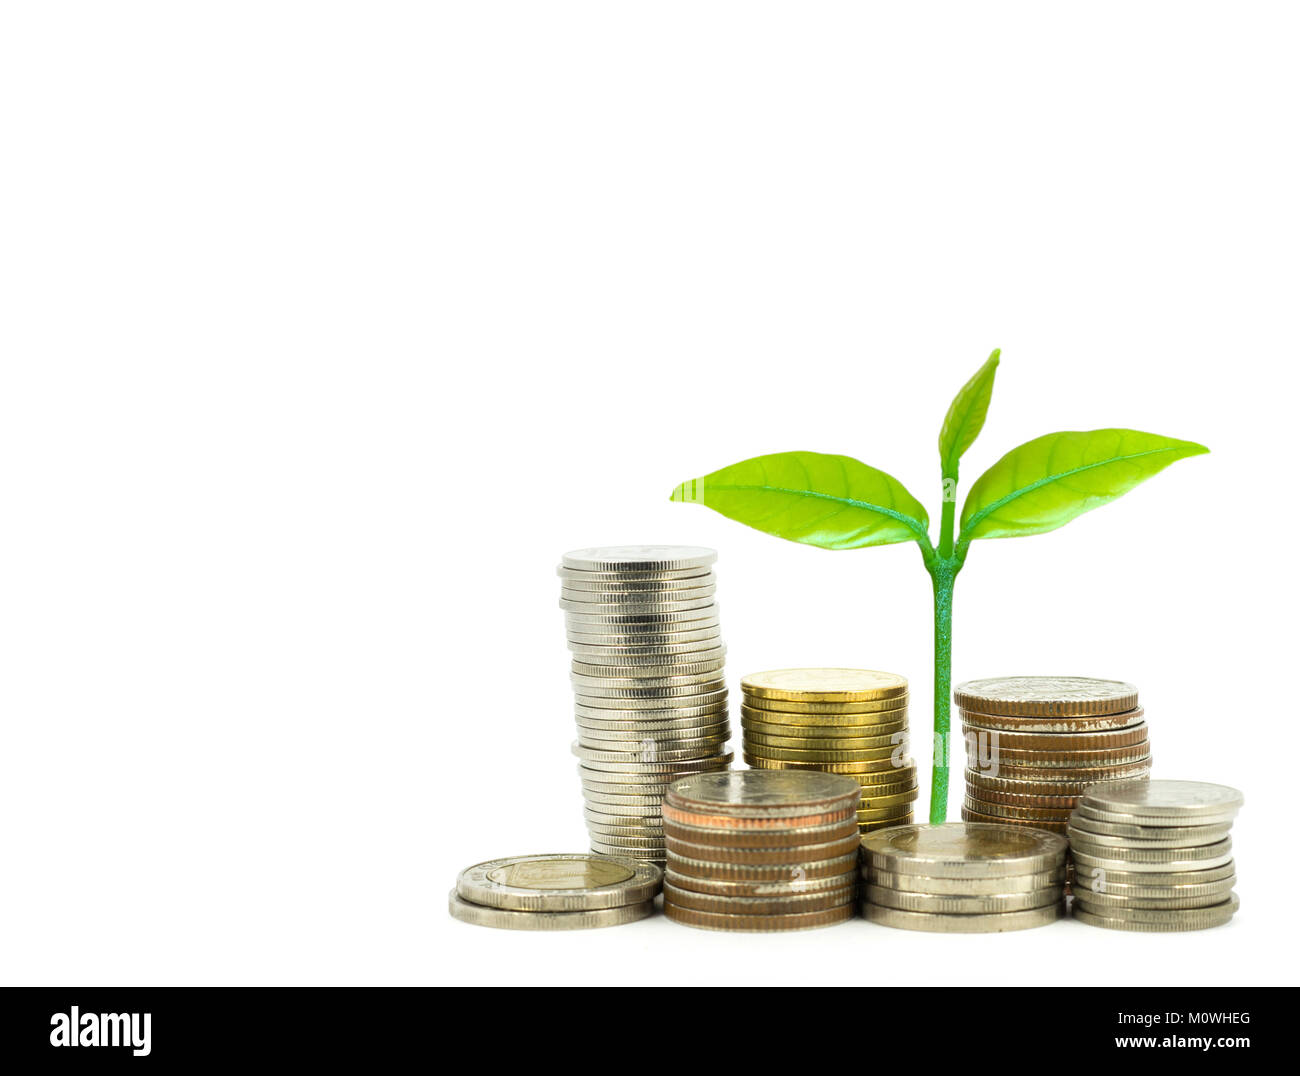 Green plant growing on money coins over white background, business and investment concept - Stock Image